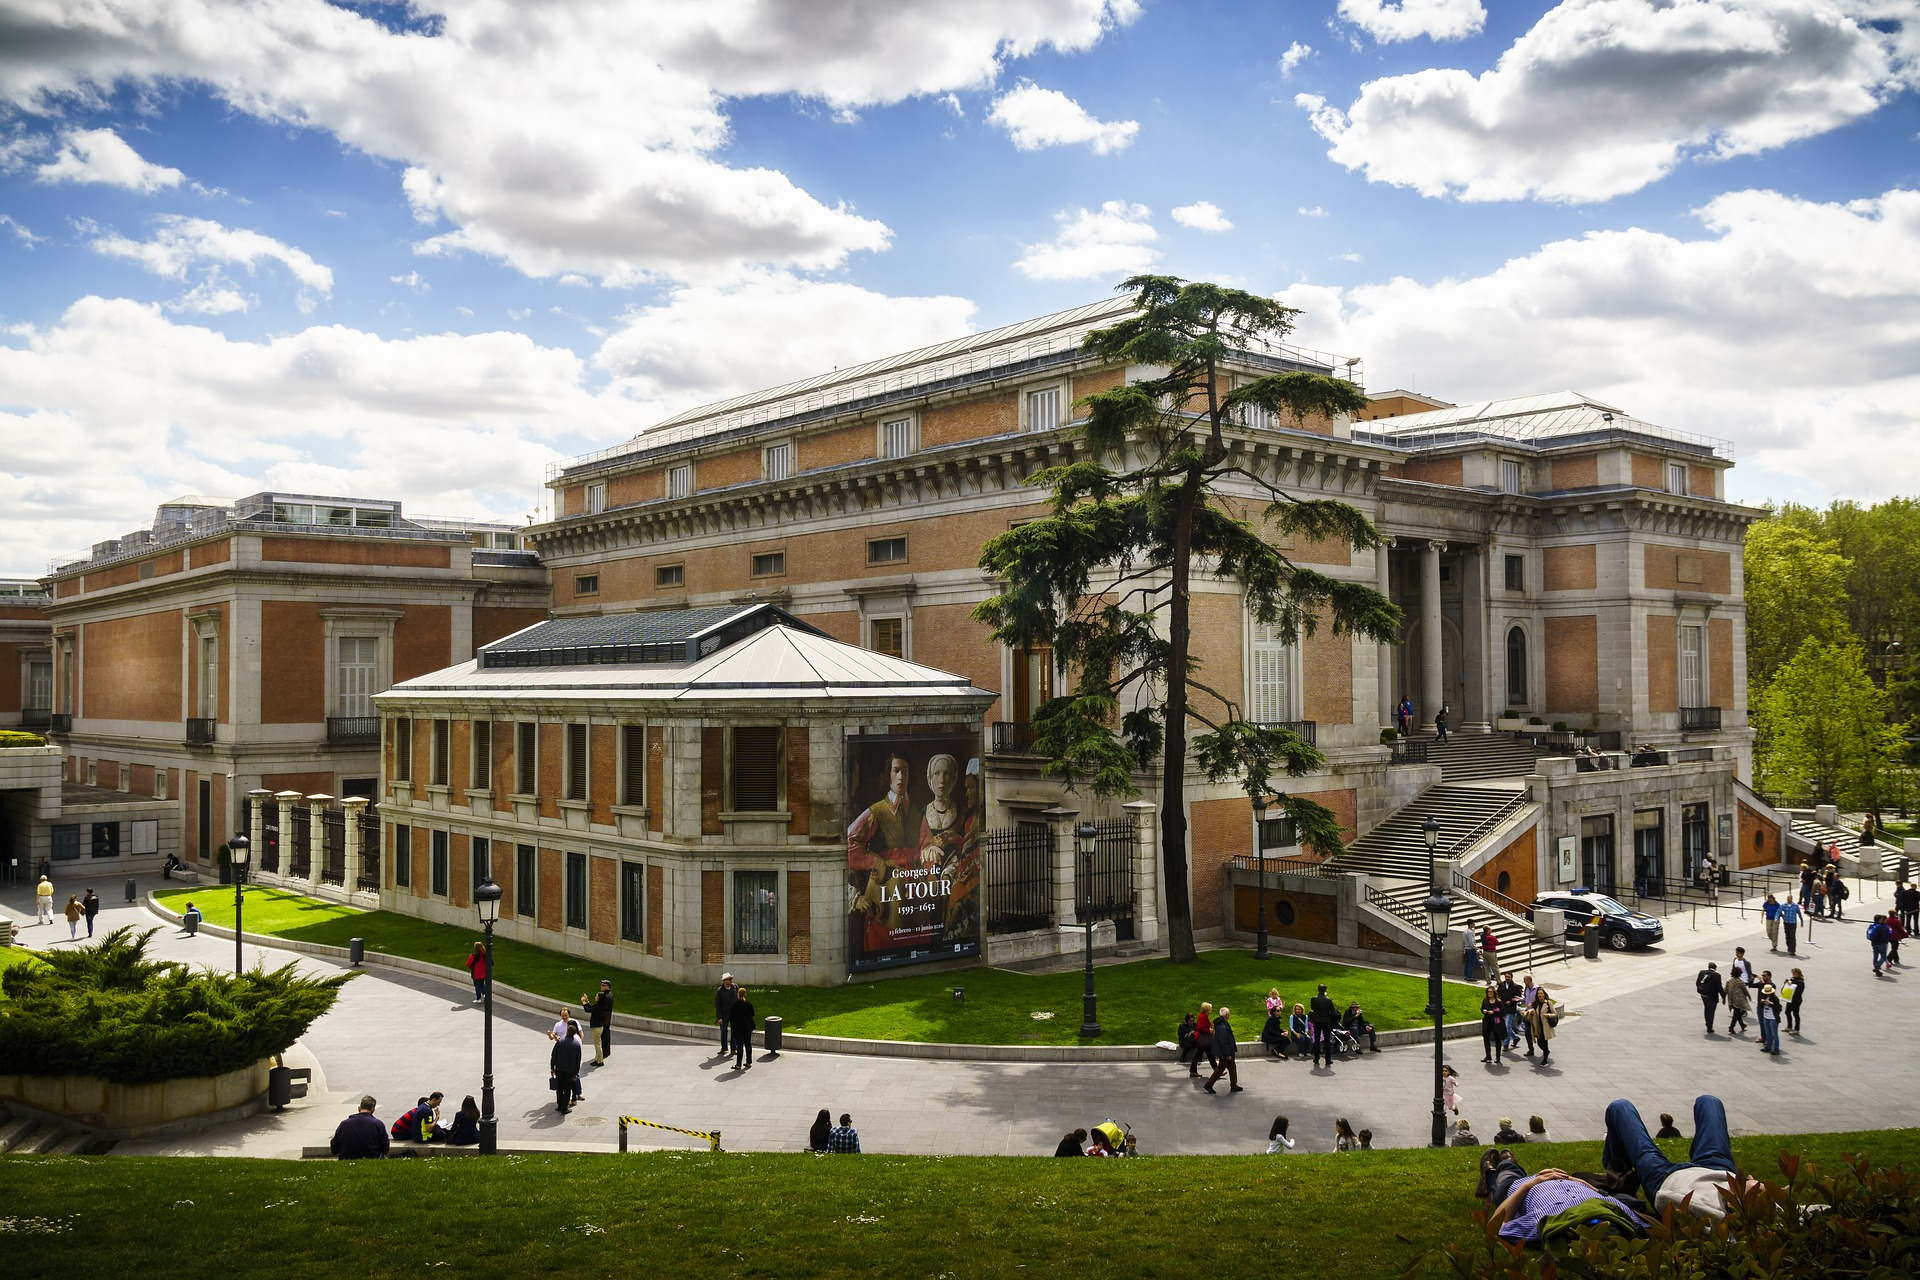 Building of Museo Nacional del Prado (Prado Museum) in Madrid, Spain